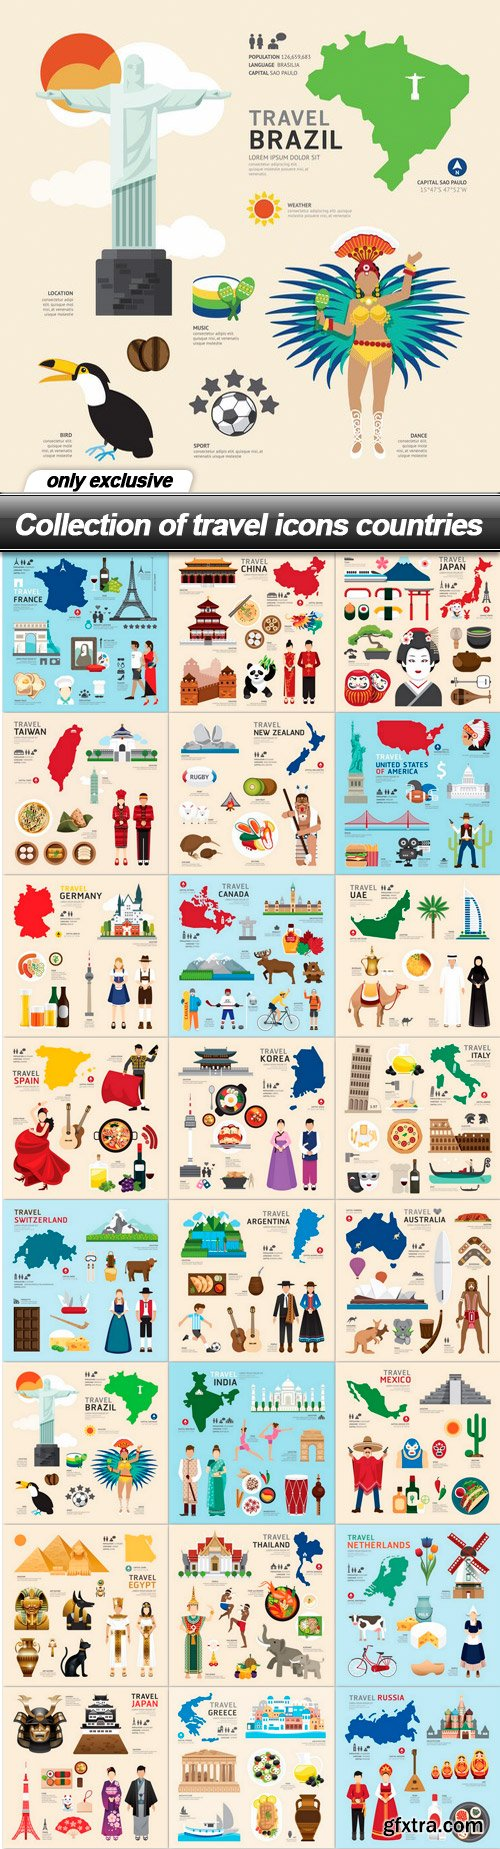 Collection of travel icons countries - 24 EPS